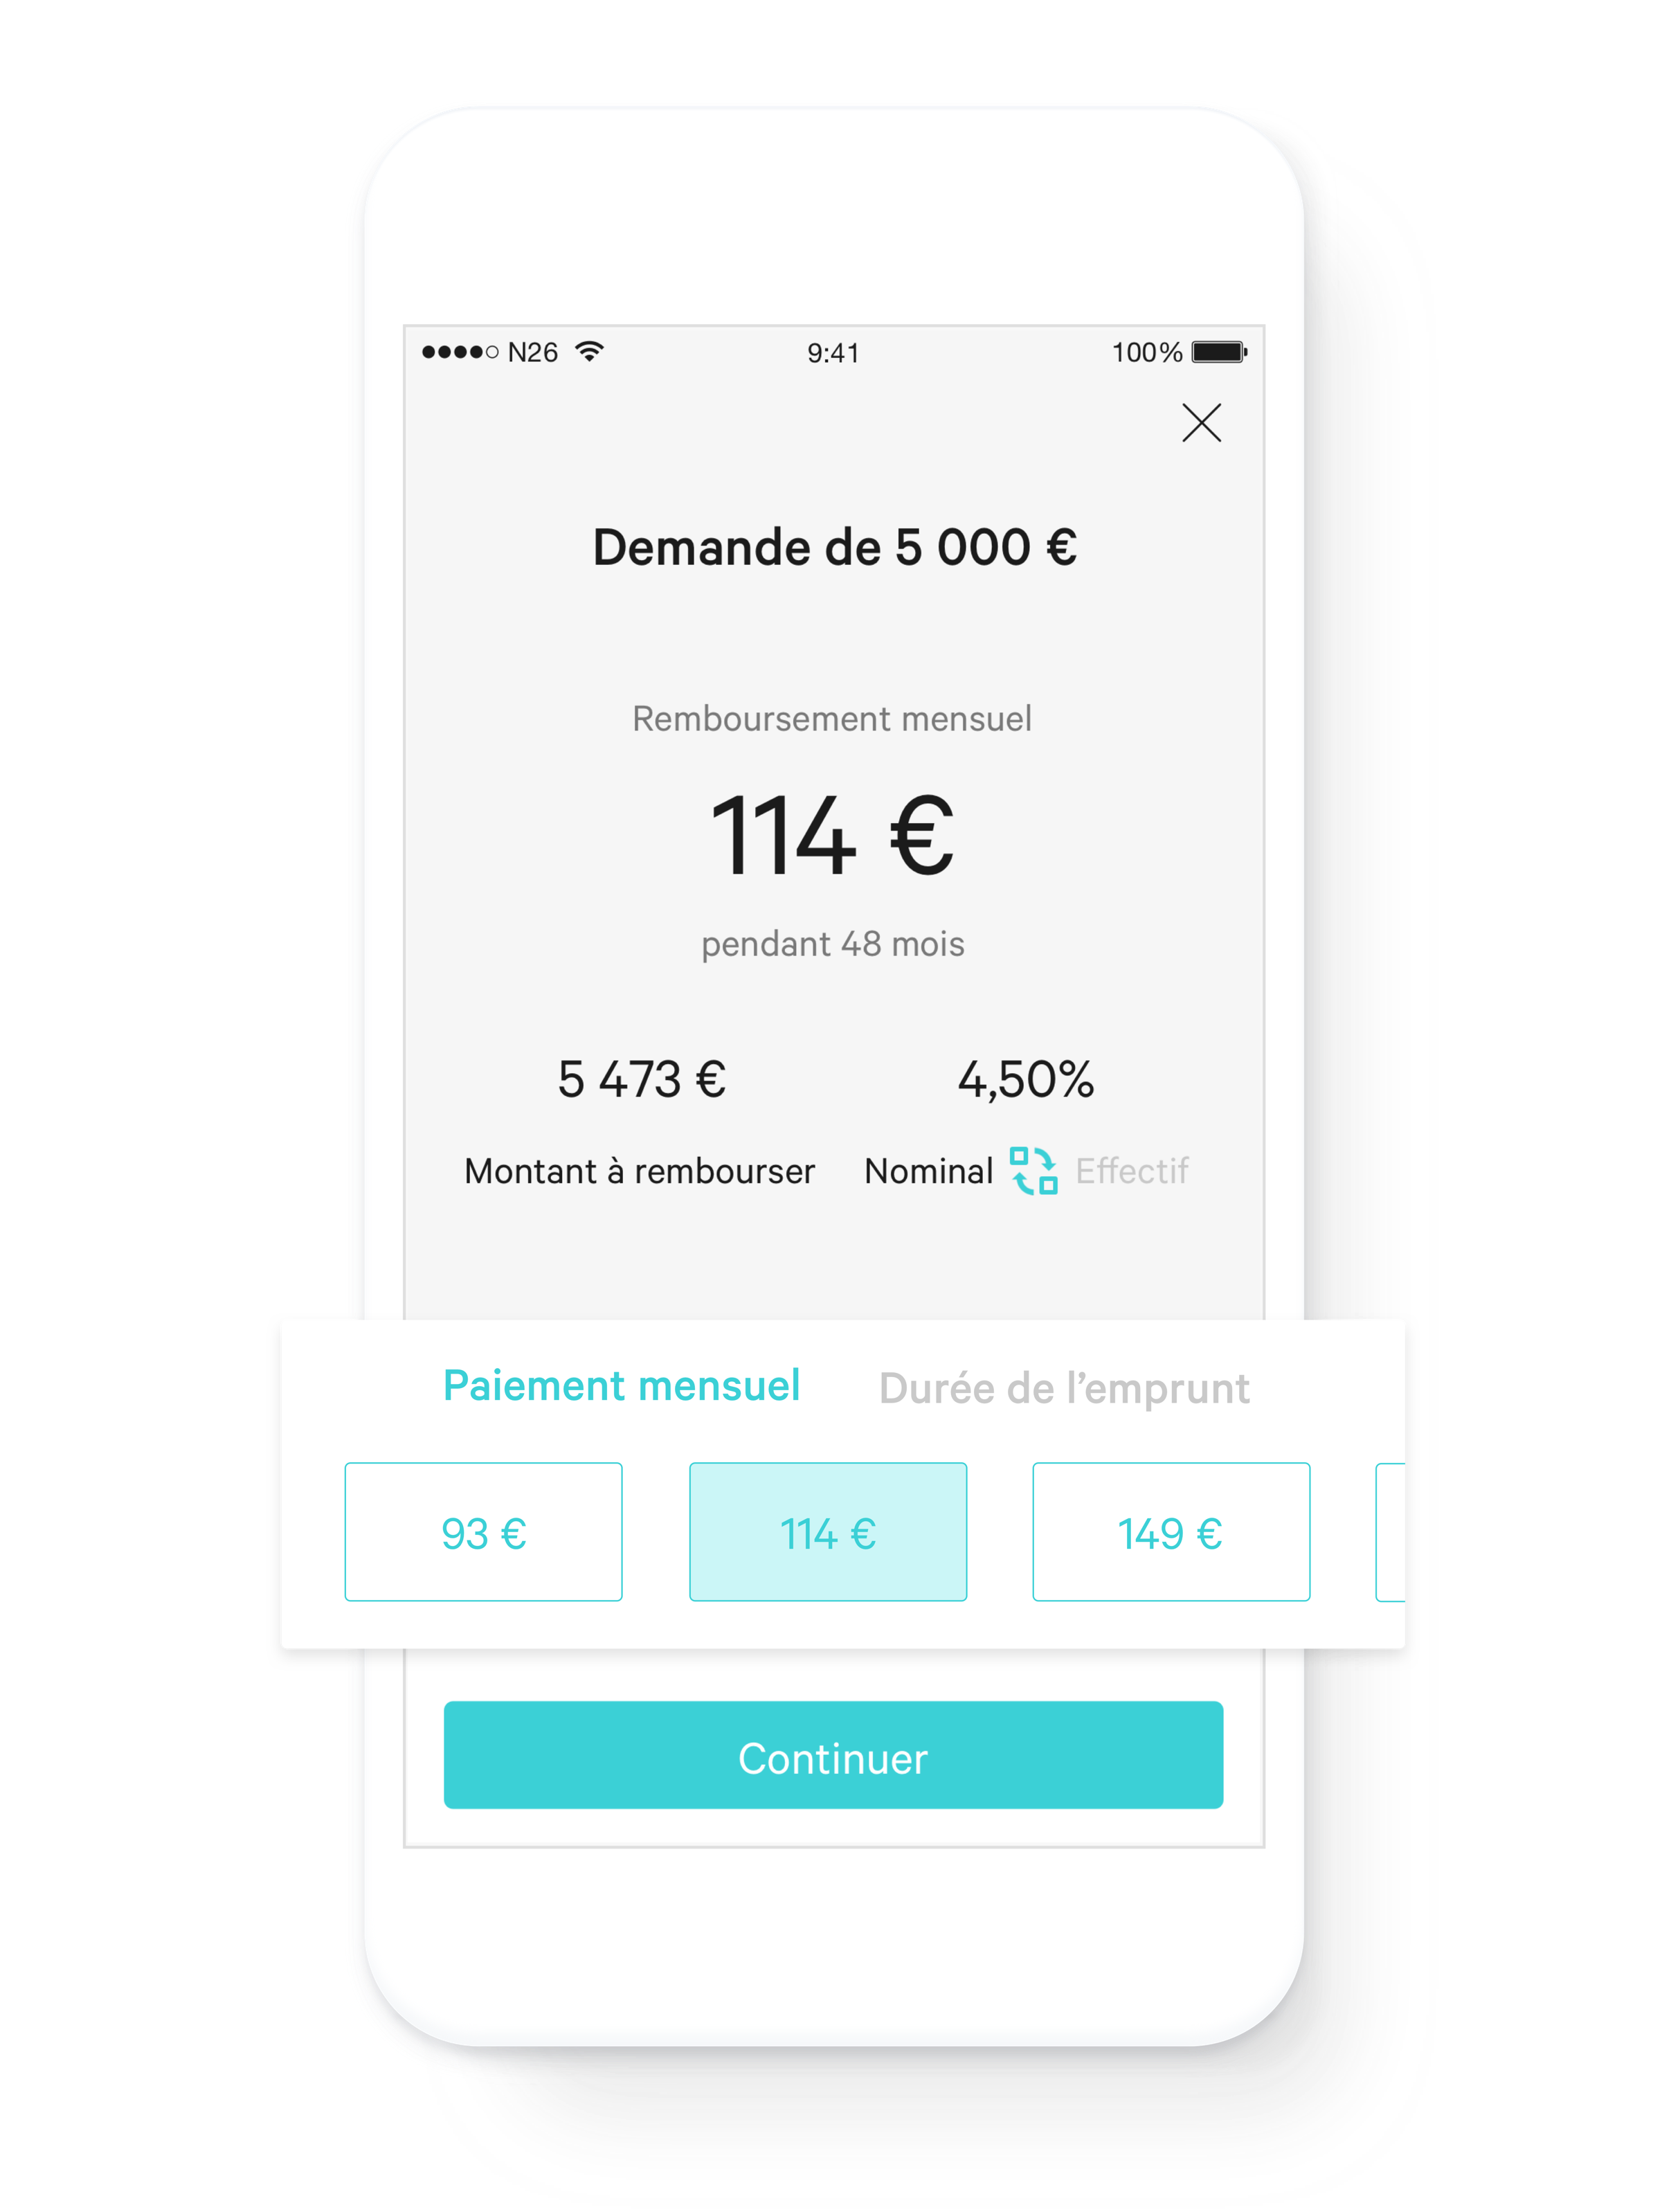 N26 partners with Younited Credit to launch credit offering in France